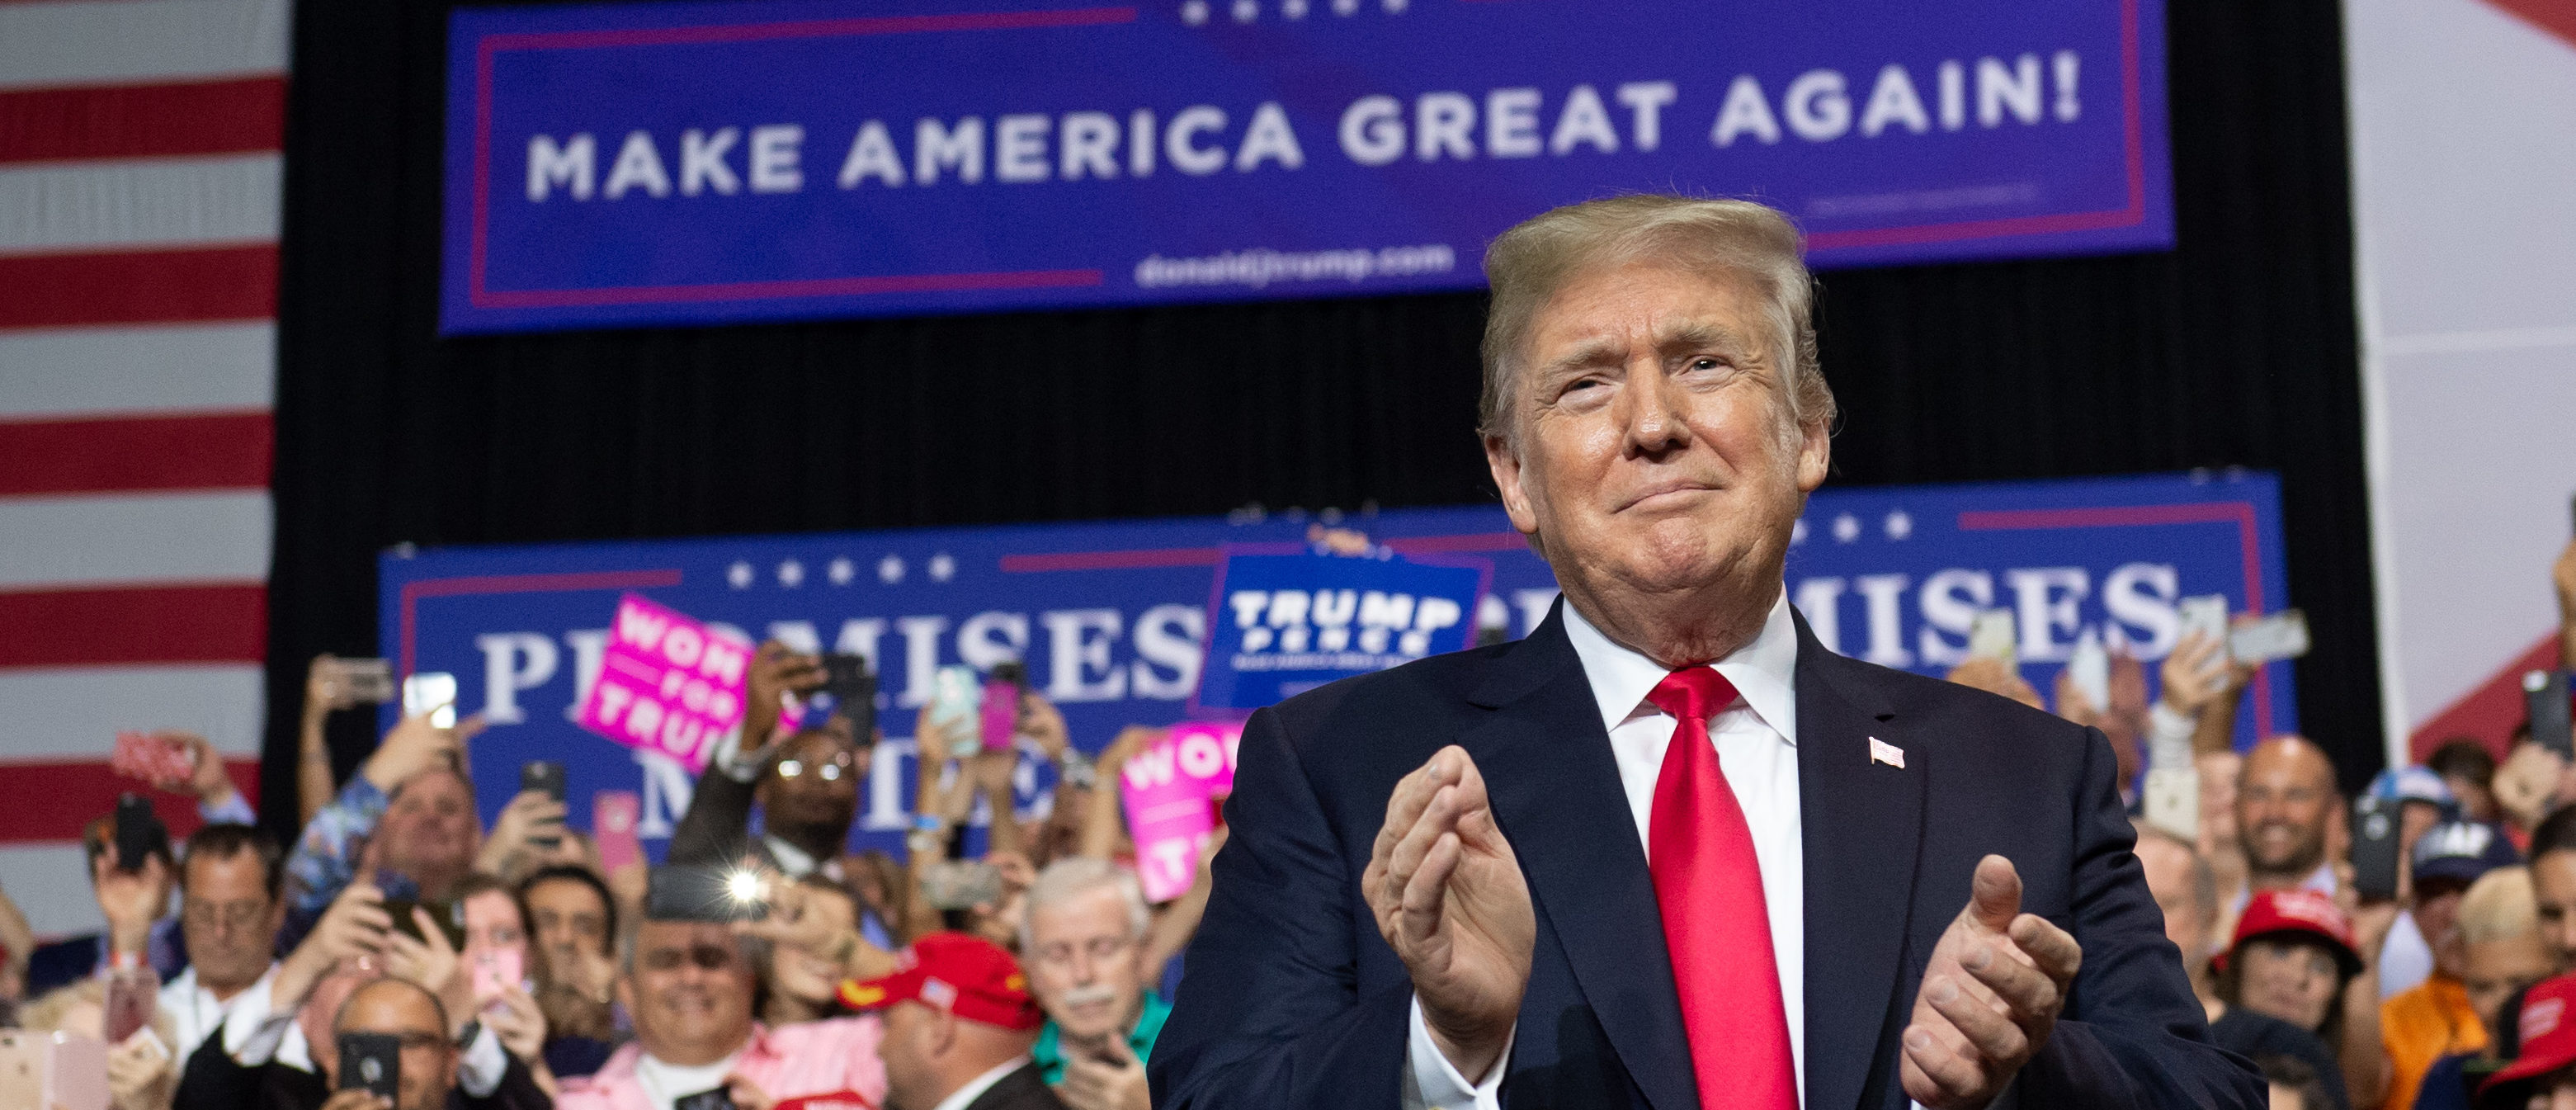 US President Donald Trump applauds during a campaign rally at the Florida State Fairgrounds Expo Hall in Tampa, Florida, on July 31, 2018. (Photo by SAUL LOEB/AFP/Getty Images)